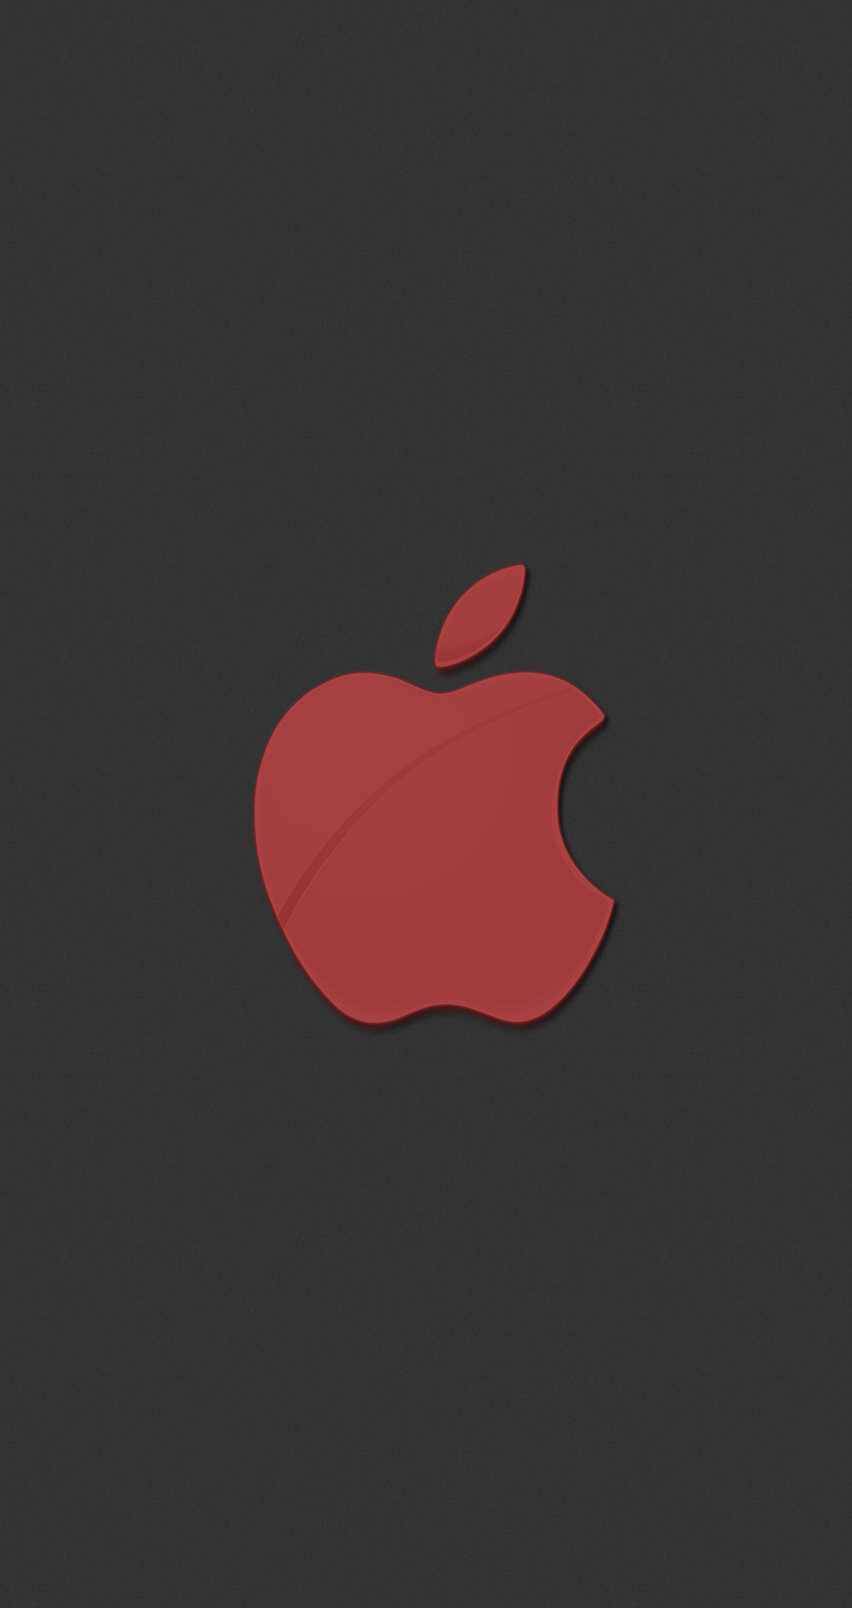 cool apple logos hd. apple logo iphone 6 background. 35 cool and awesome wallpapers in hd quality logos